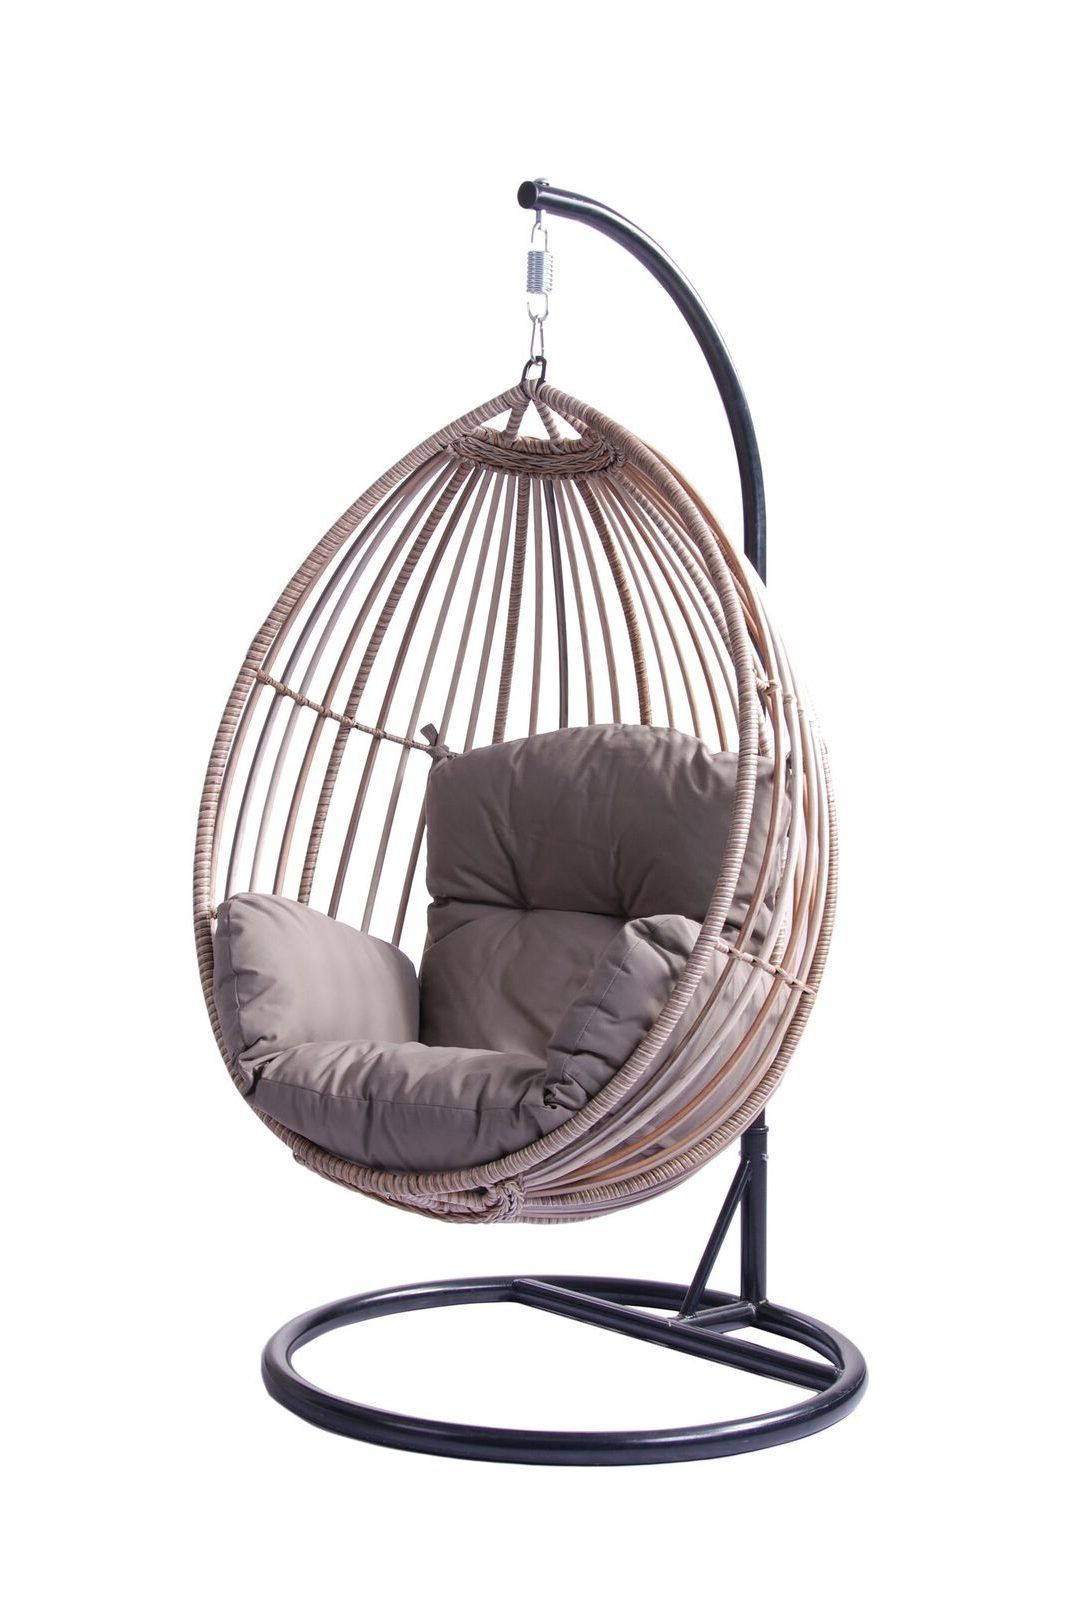 Koala Hanging Egg Chair Natural Look Hanging egg chair